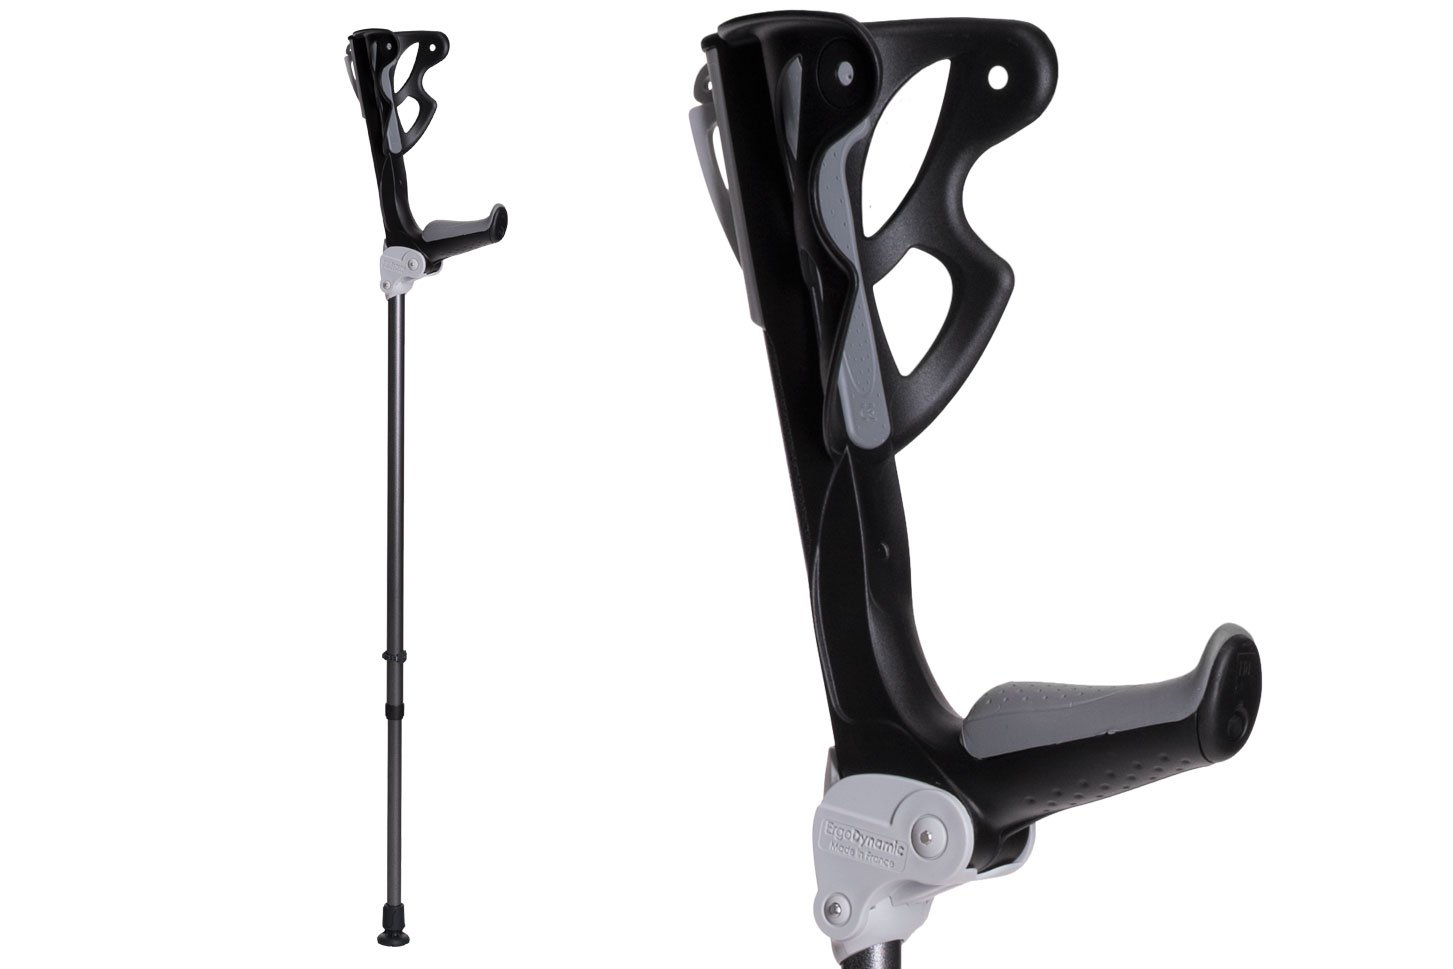 Ergodynamic Forearm Crutches By FDI (Size: 4'7-6'8) 1 Pair/2 Crutches / Black / Lightest Crutch with an Integrated Shock Absorber (M (132-198lbs) spring rate)